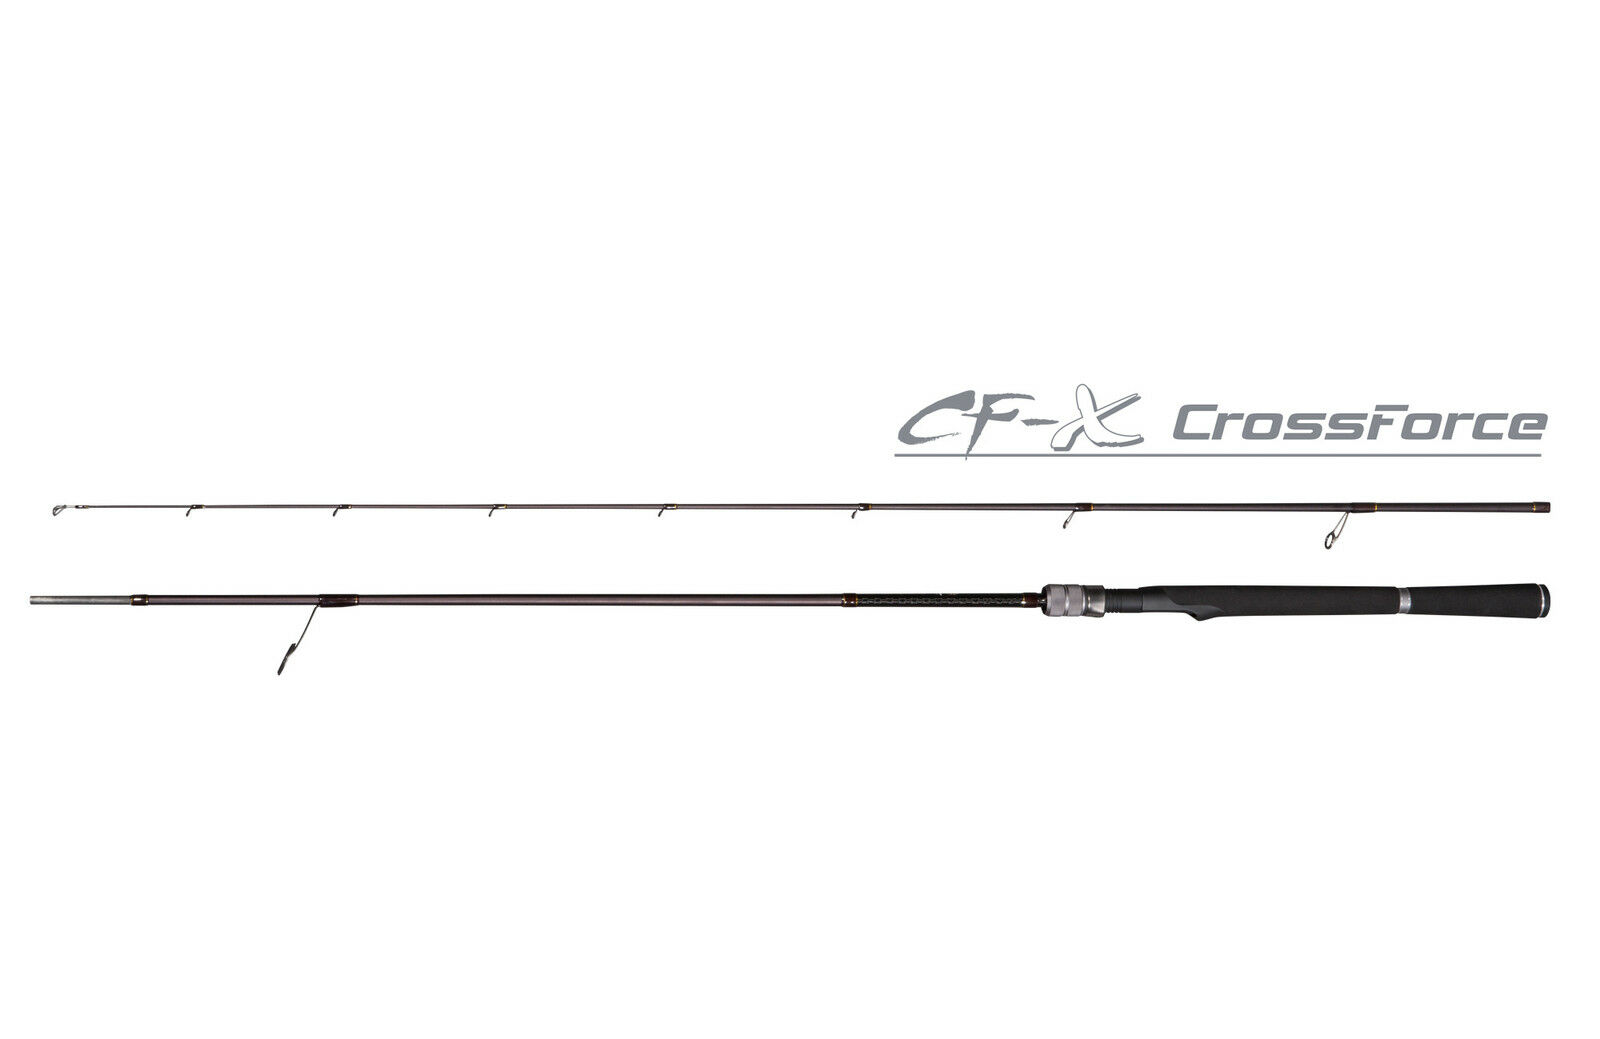 Dragon CXT SPINN crossforce CF-X/Spinning Rods